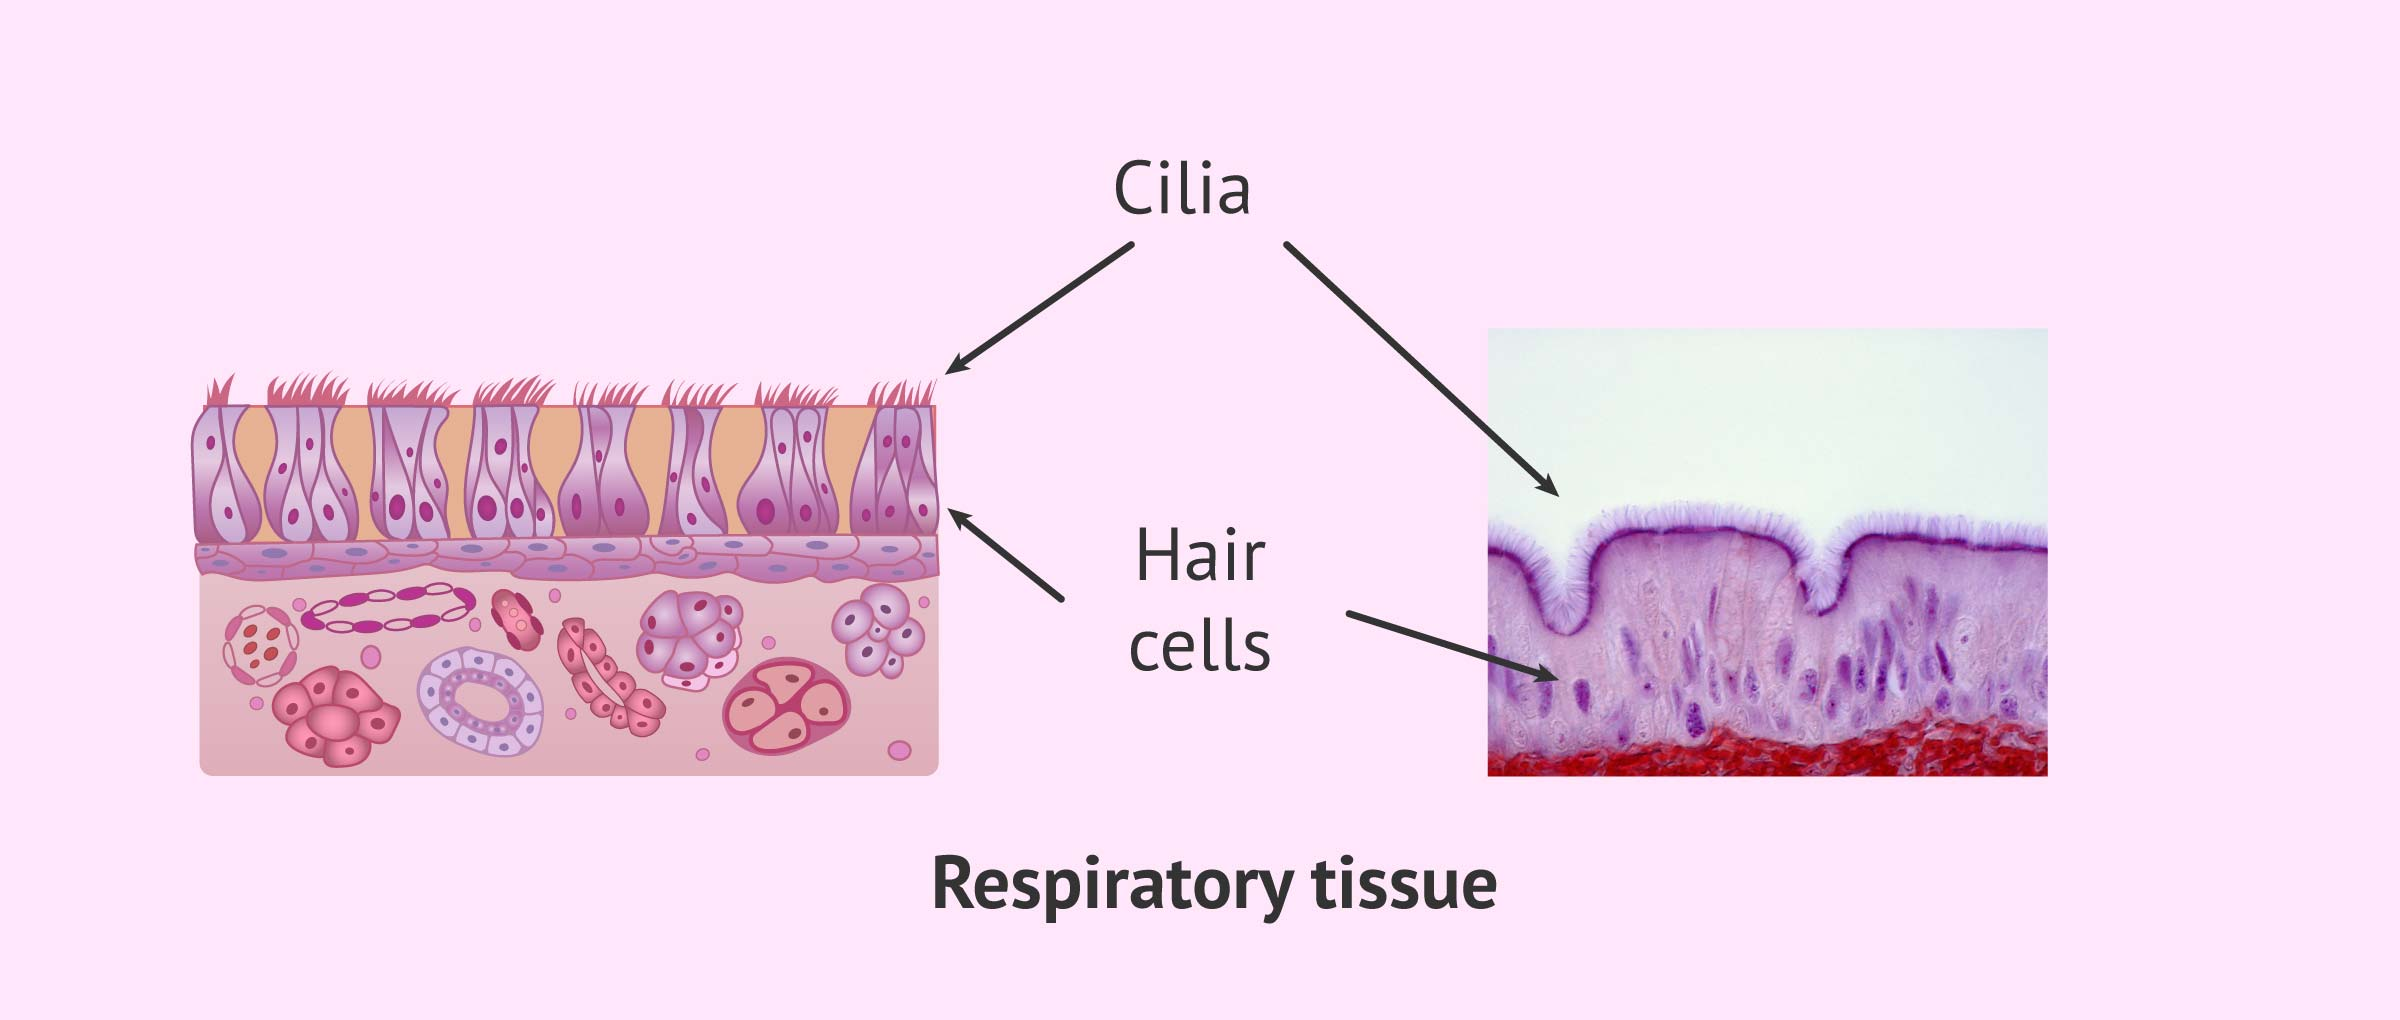 Ciliary Respiratory Epithelium and Kartagener's Syndrome